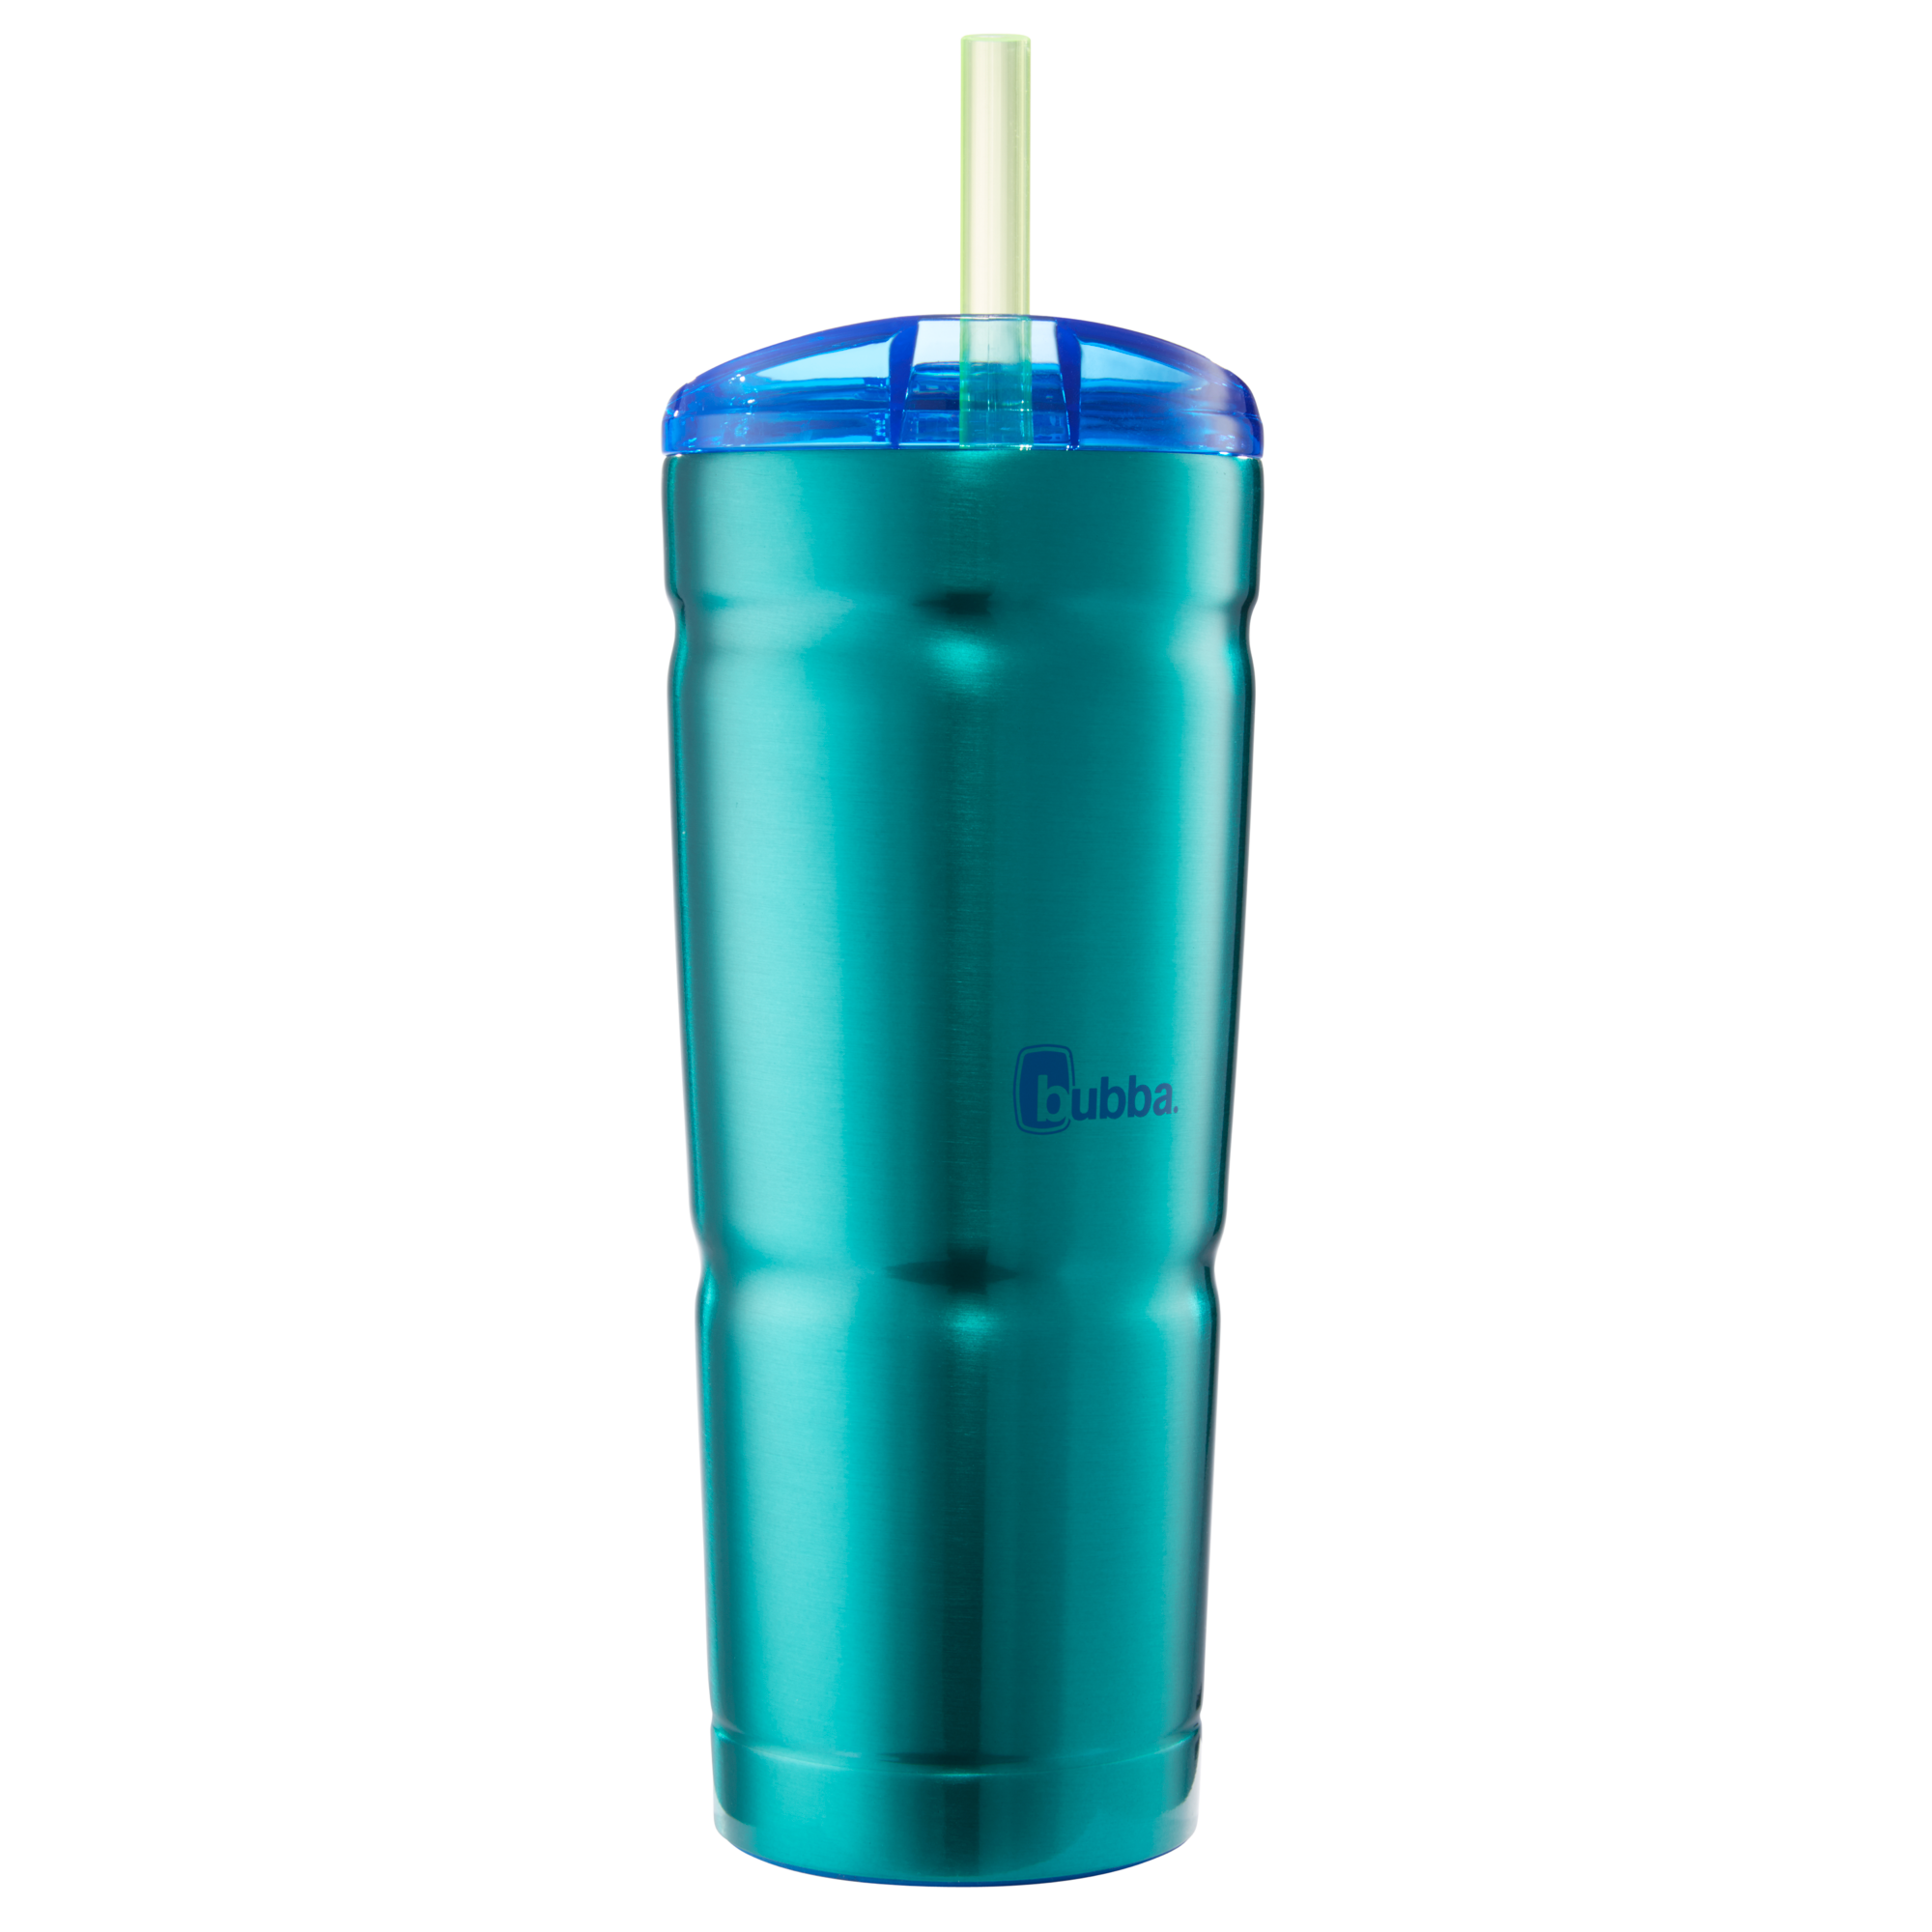 24 oz. Envy Insulated Stainless Steel Tumbler with Straw